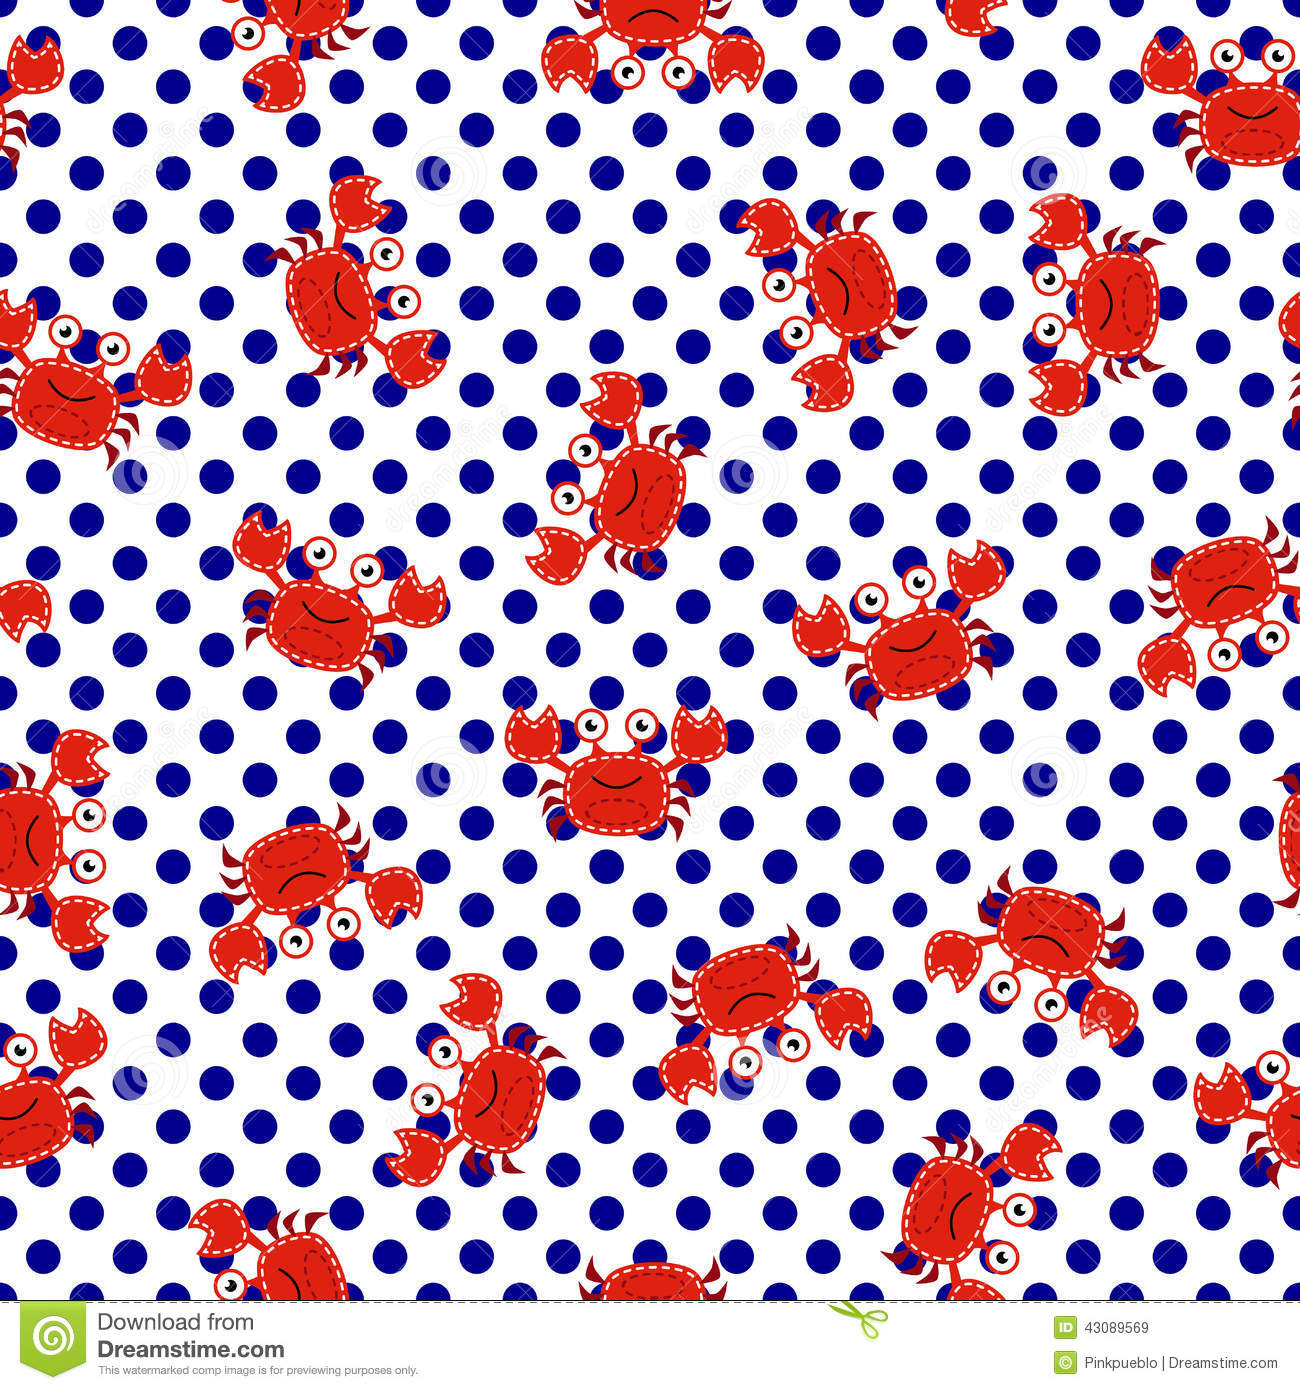 Lilly Pulitzer Wallpaper Fall Seamless Tileable Nautical Themed Vector Background Or